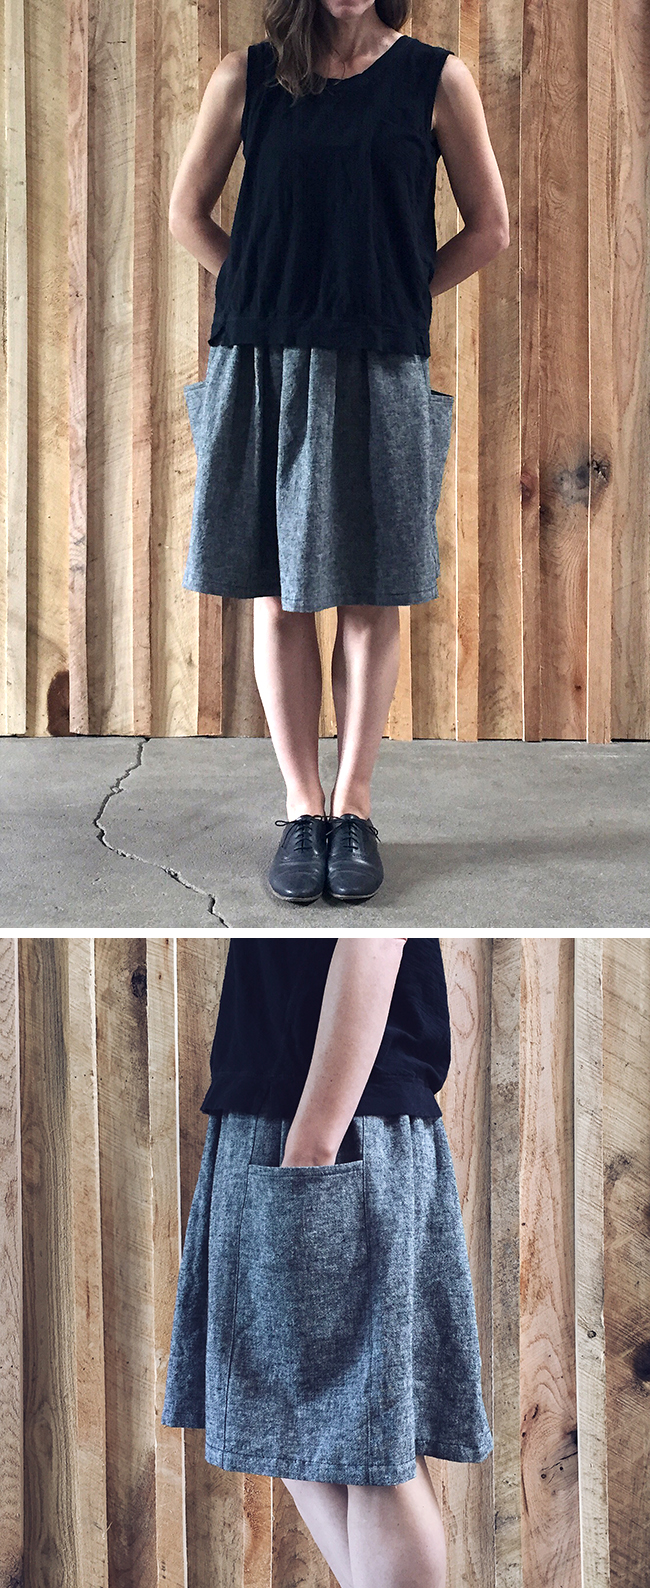 May make No. 1: the Gathered Skirt